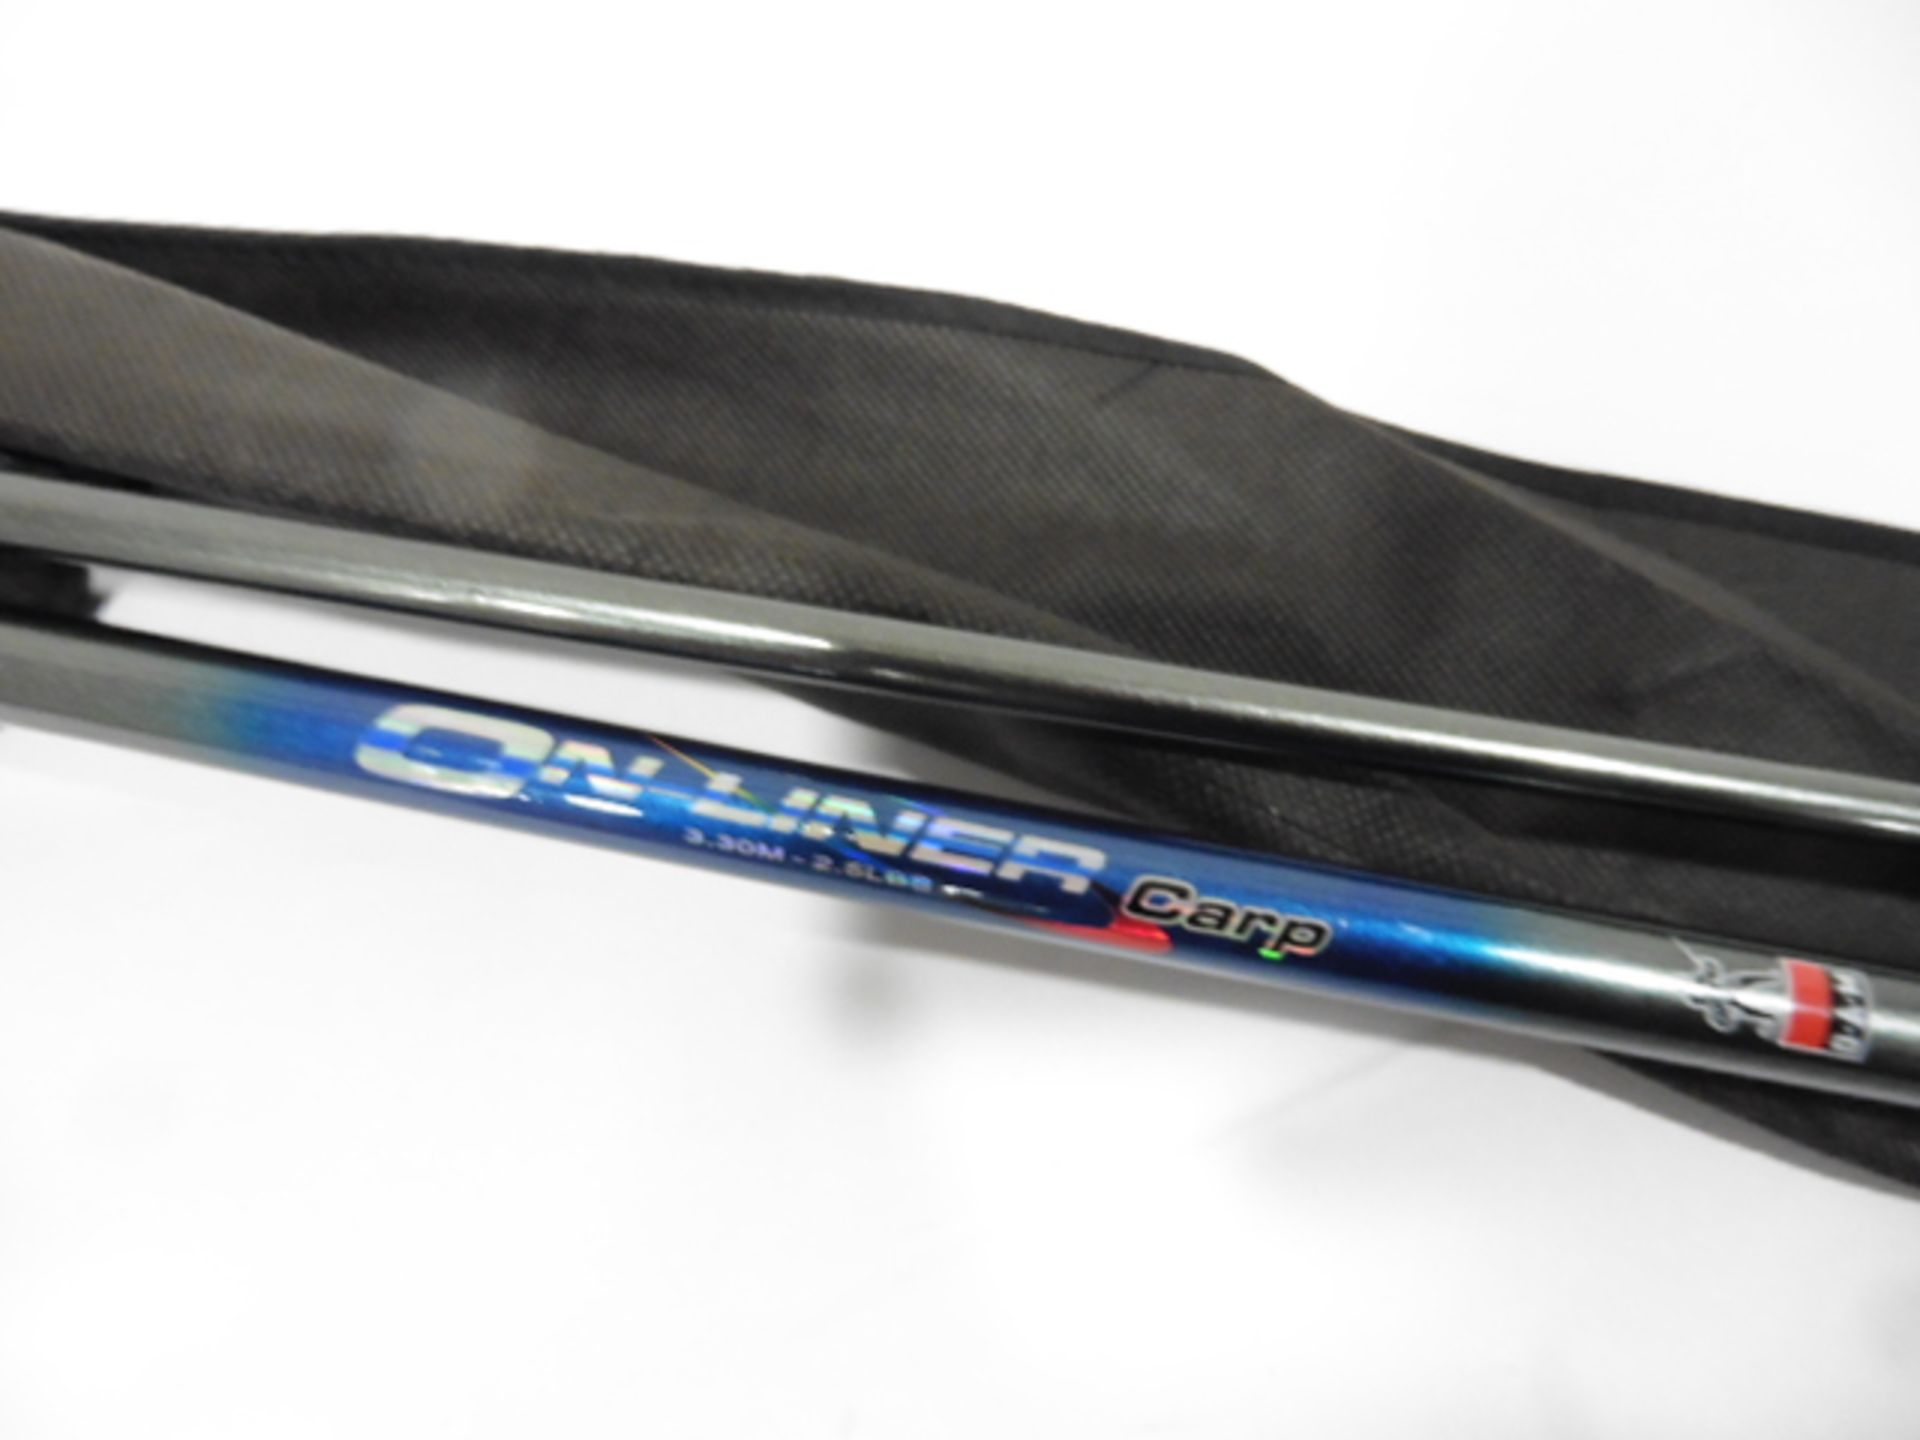 DAM Onliner 3.3m match rod - Image 2 of 2